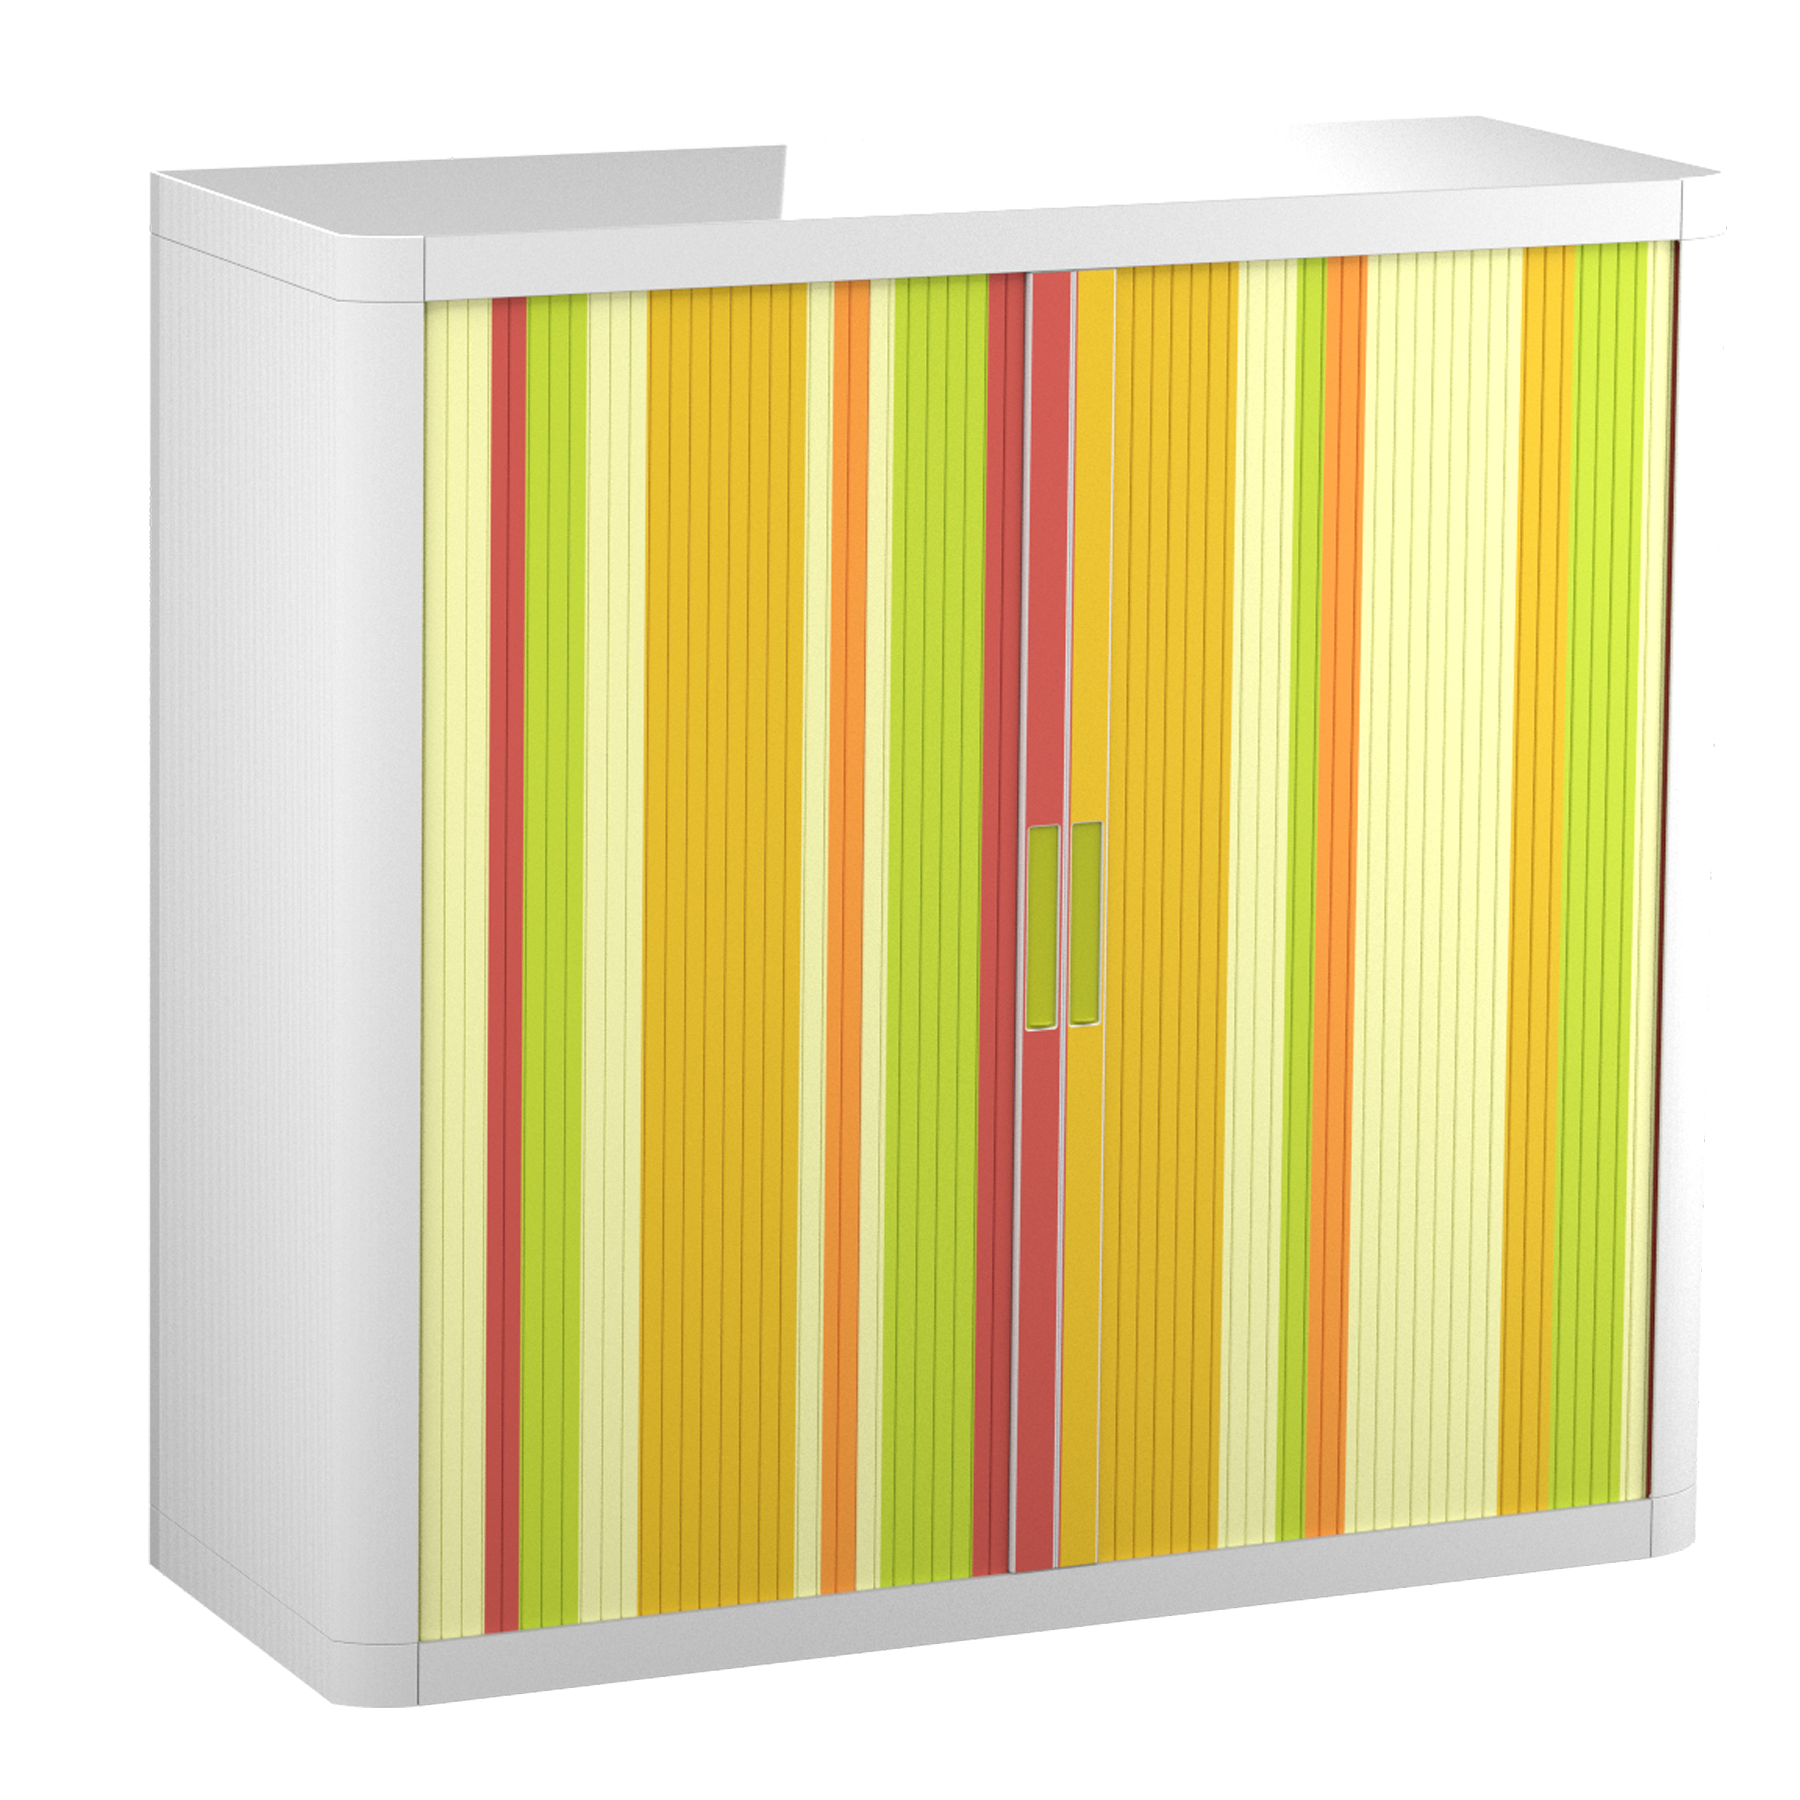 "Paperflow easyOffice Storage Cabinet, 41"" Tall with Two Shelves, Yellow Green and Red Vertical Stripe"